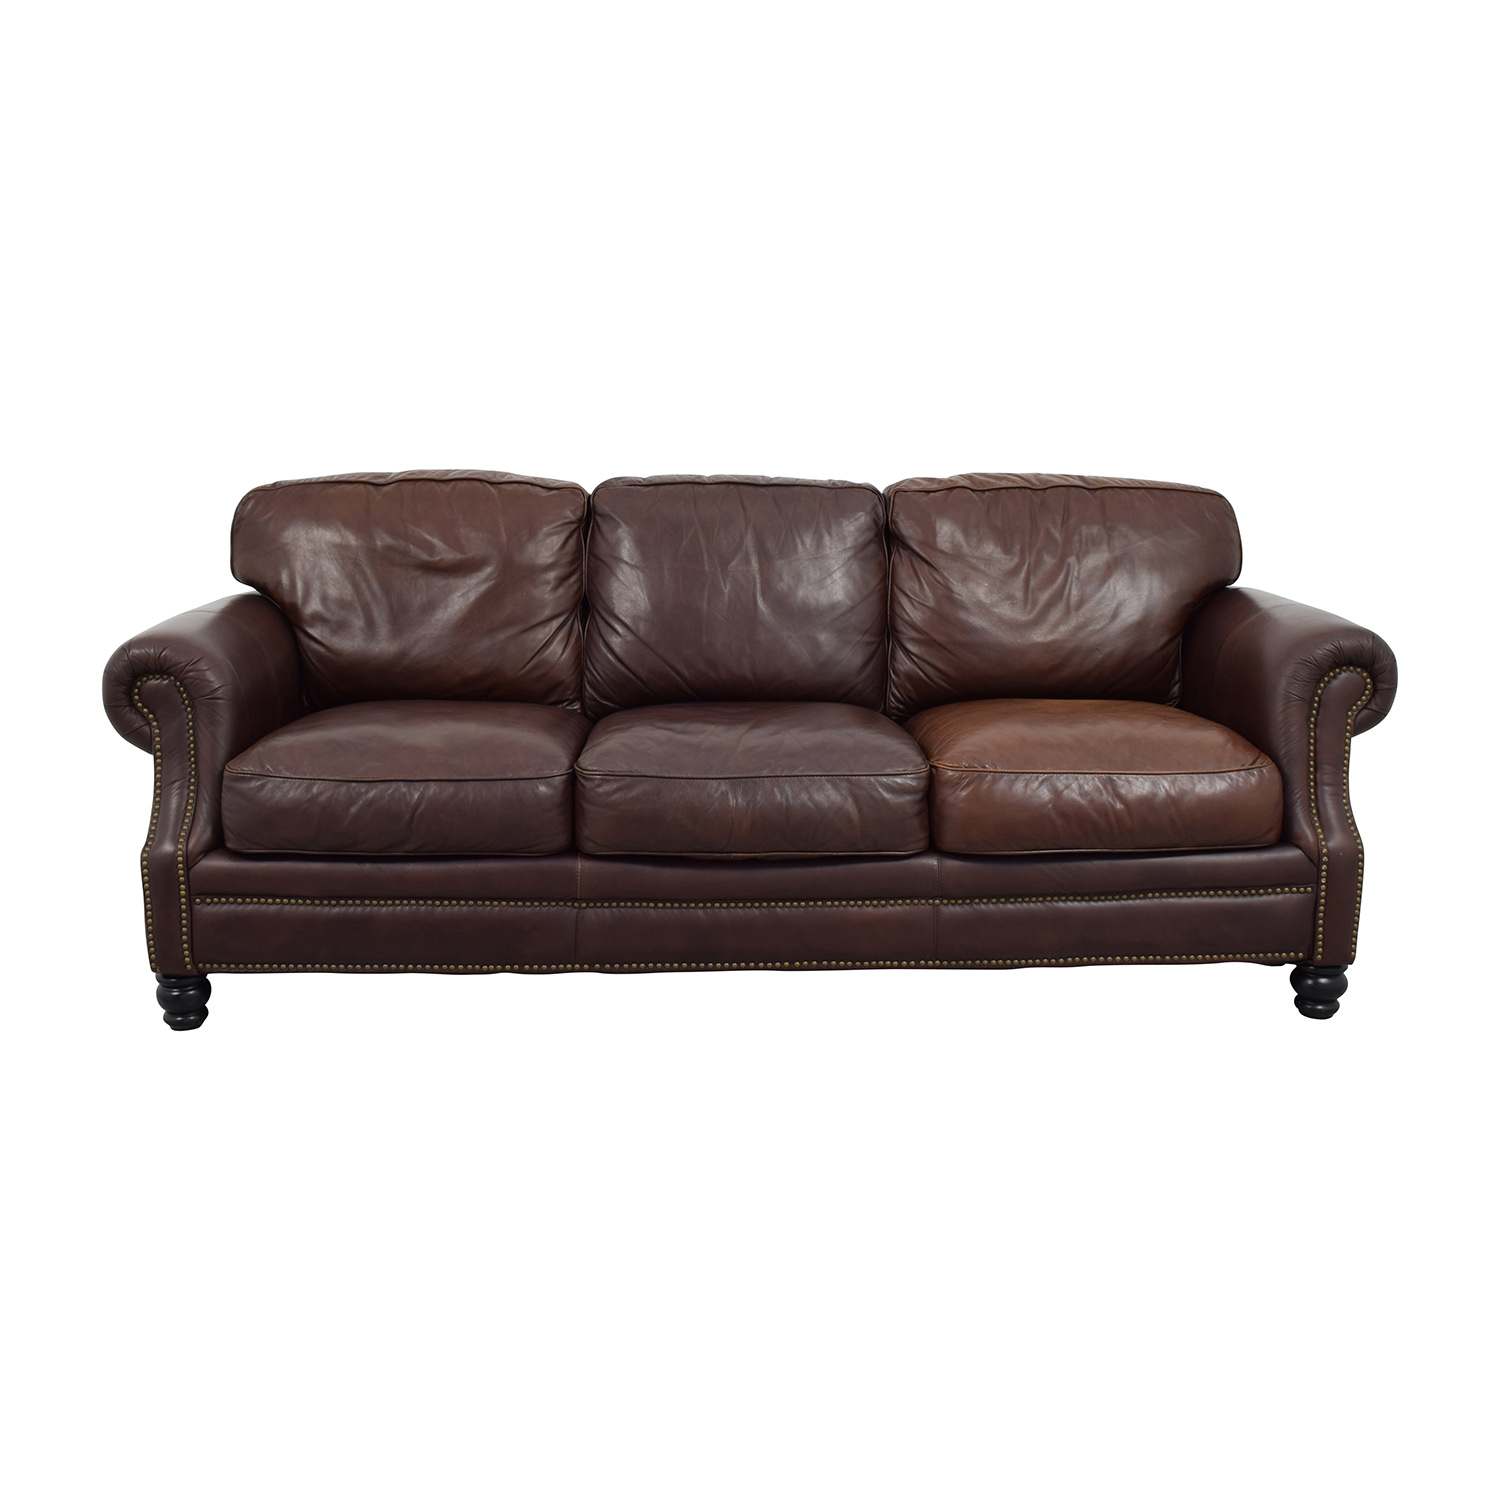 Ashton sofa 10 spring street ashton faux leather sofa bed for Studded leather sofa